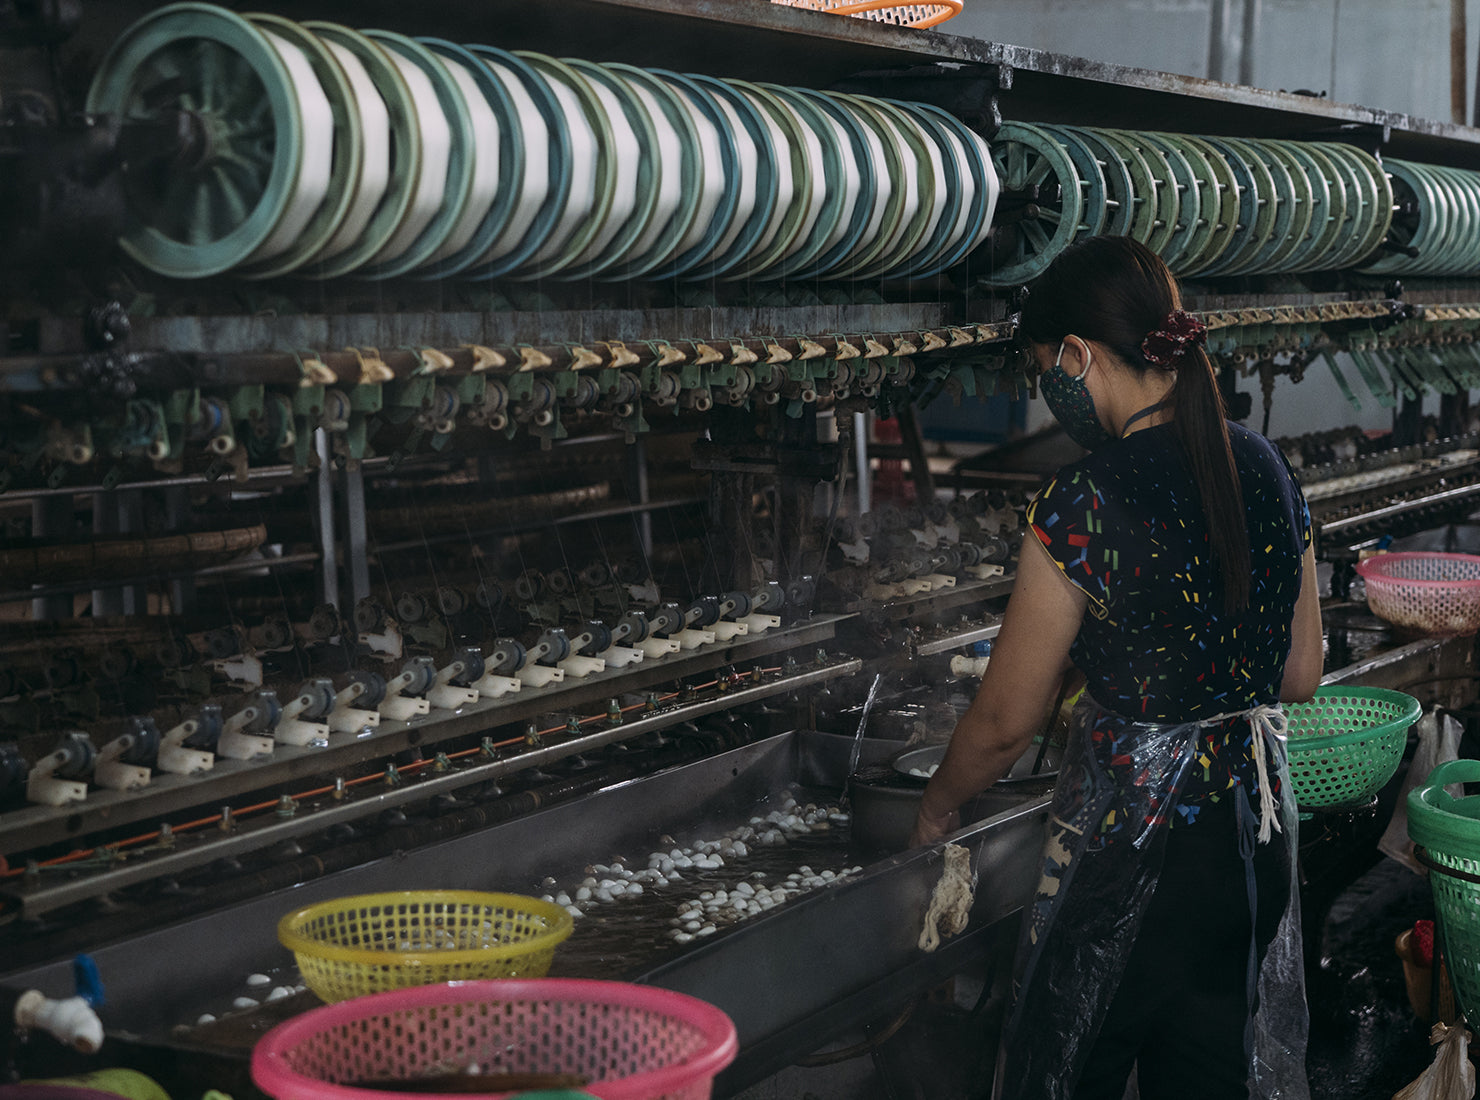 Silk production process